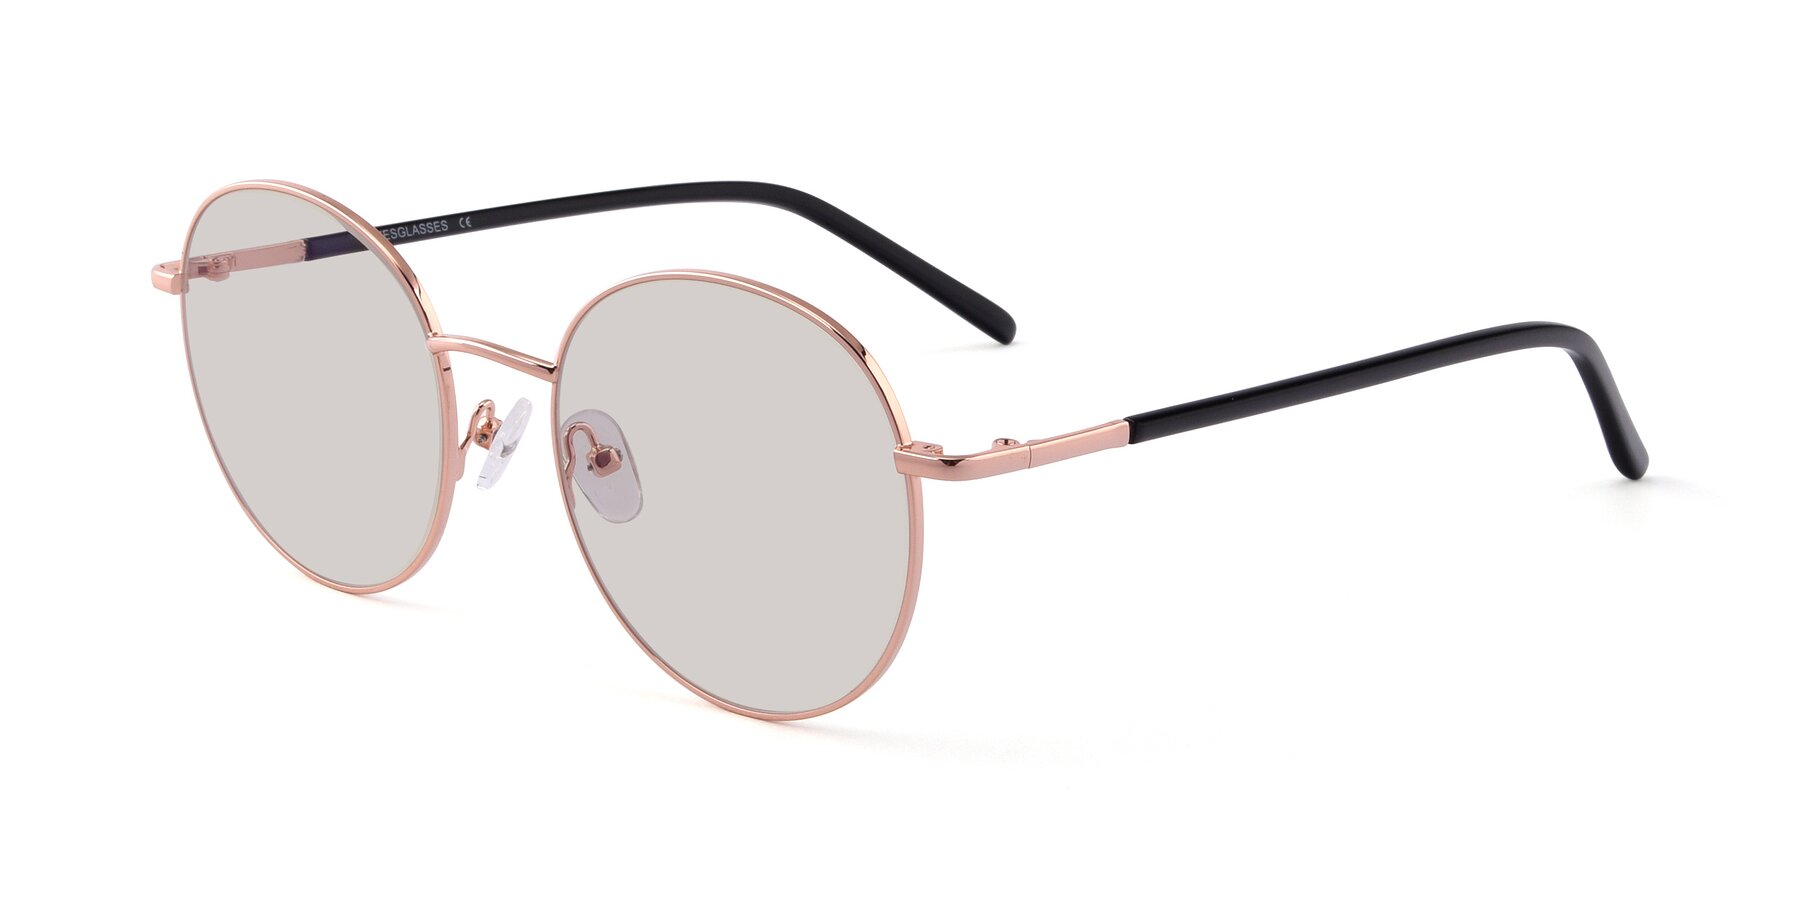 Angle of Cosmos in Rose Gold with Light Brown Tinted Lenses